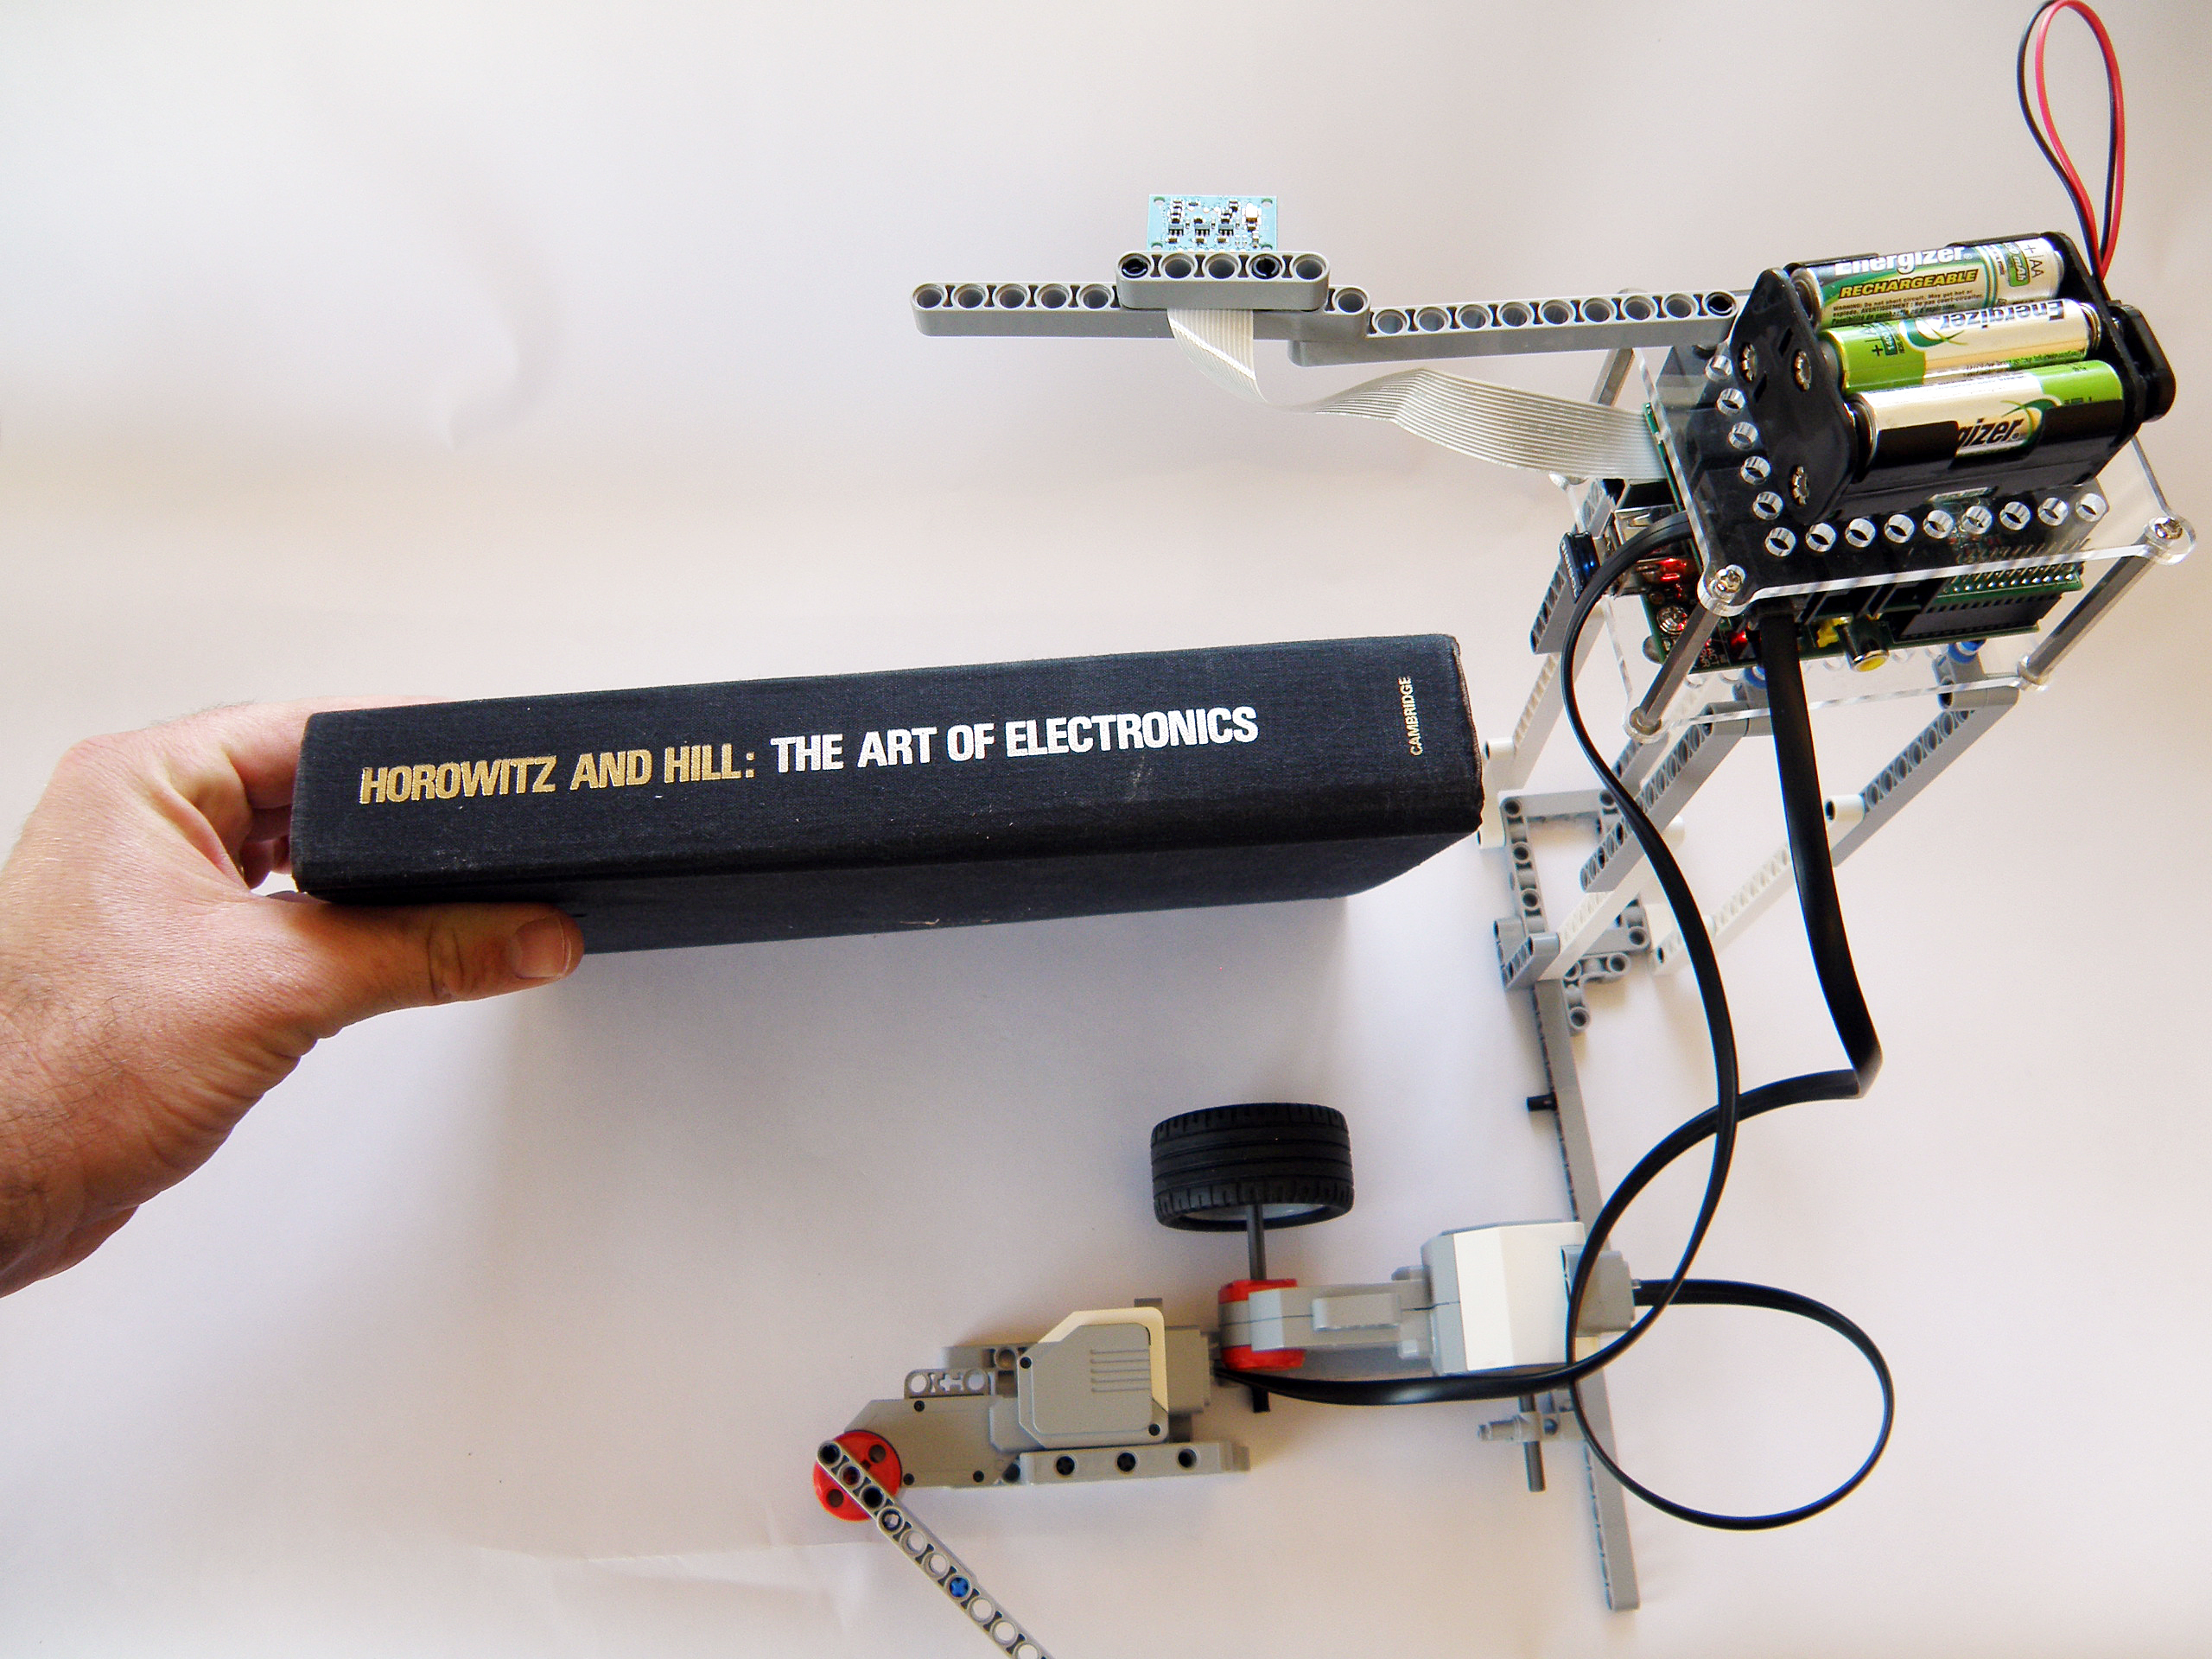 Digitize Books With Mindstorms And Raspberry Pi Make Diy Electrical Wiring We Read A Book Robot Made Of Lego